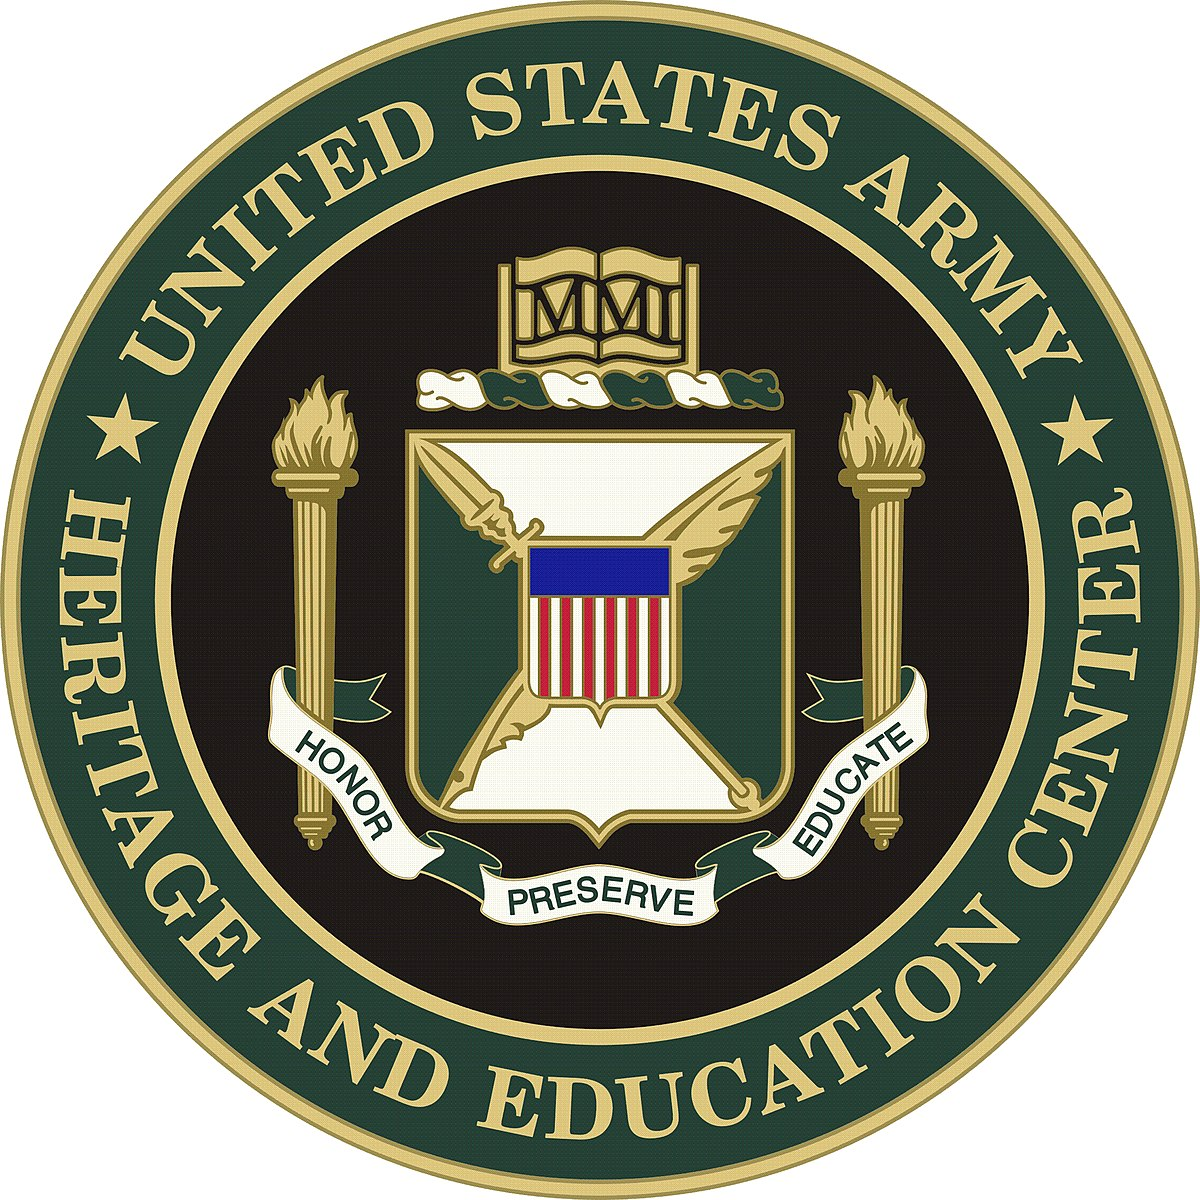 military education Military education fayetteville state university at fort bragg has the reputation as one of the nation's top military-friendly universities as a provider of higher education to military personnel on fort bragg, the university is unalterably committed to its military neighbors.